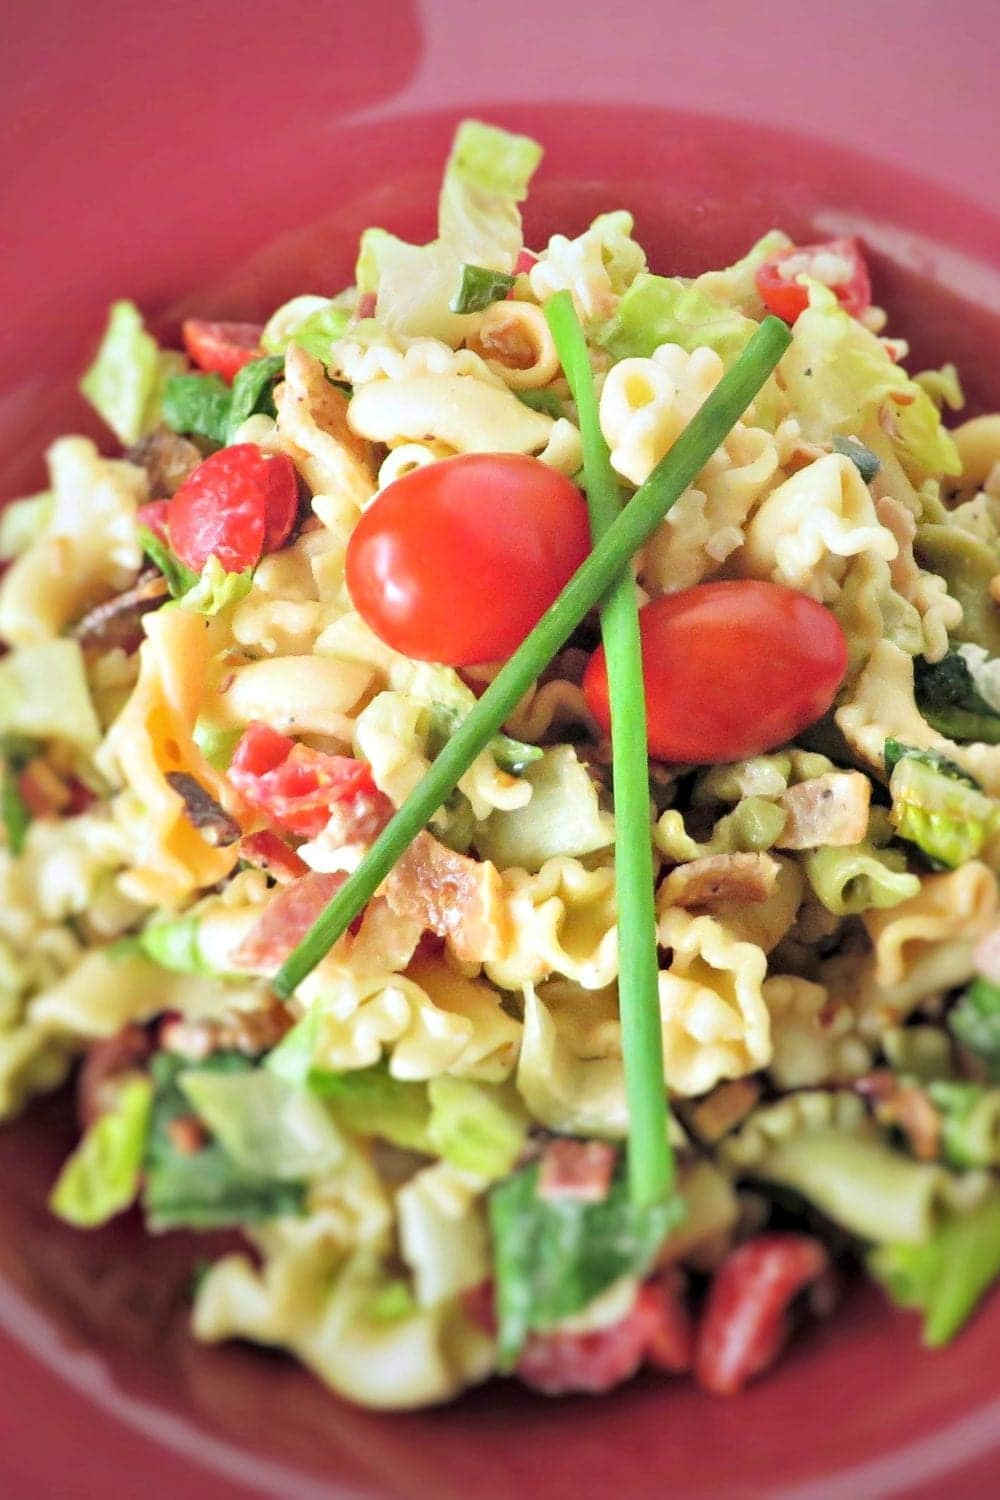 BLT Pasta Salad: all your favorite flavors of a classic BLT tossed together in a pasta salad. Perfect for any get together!